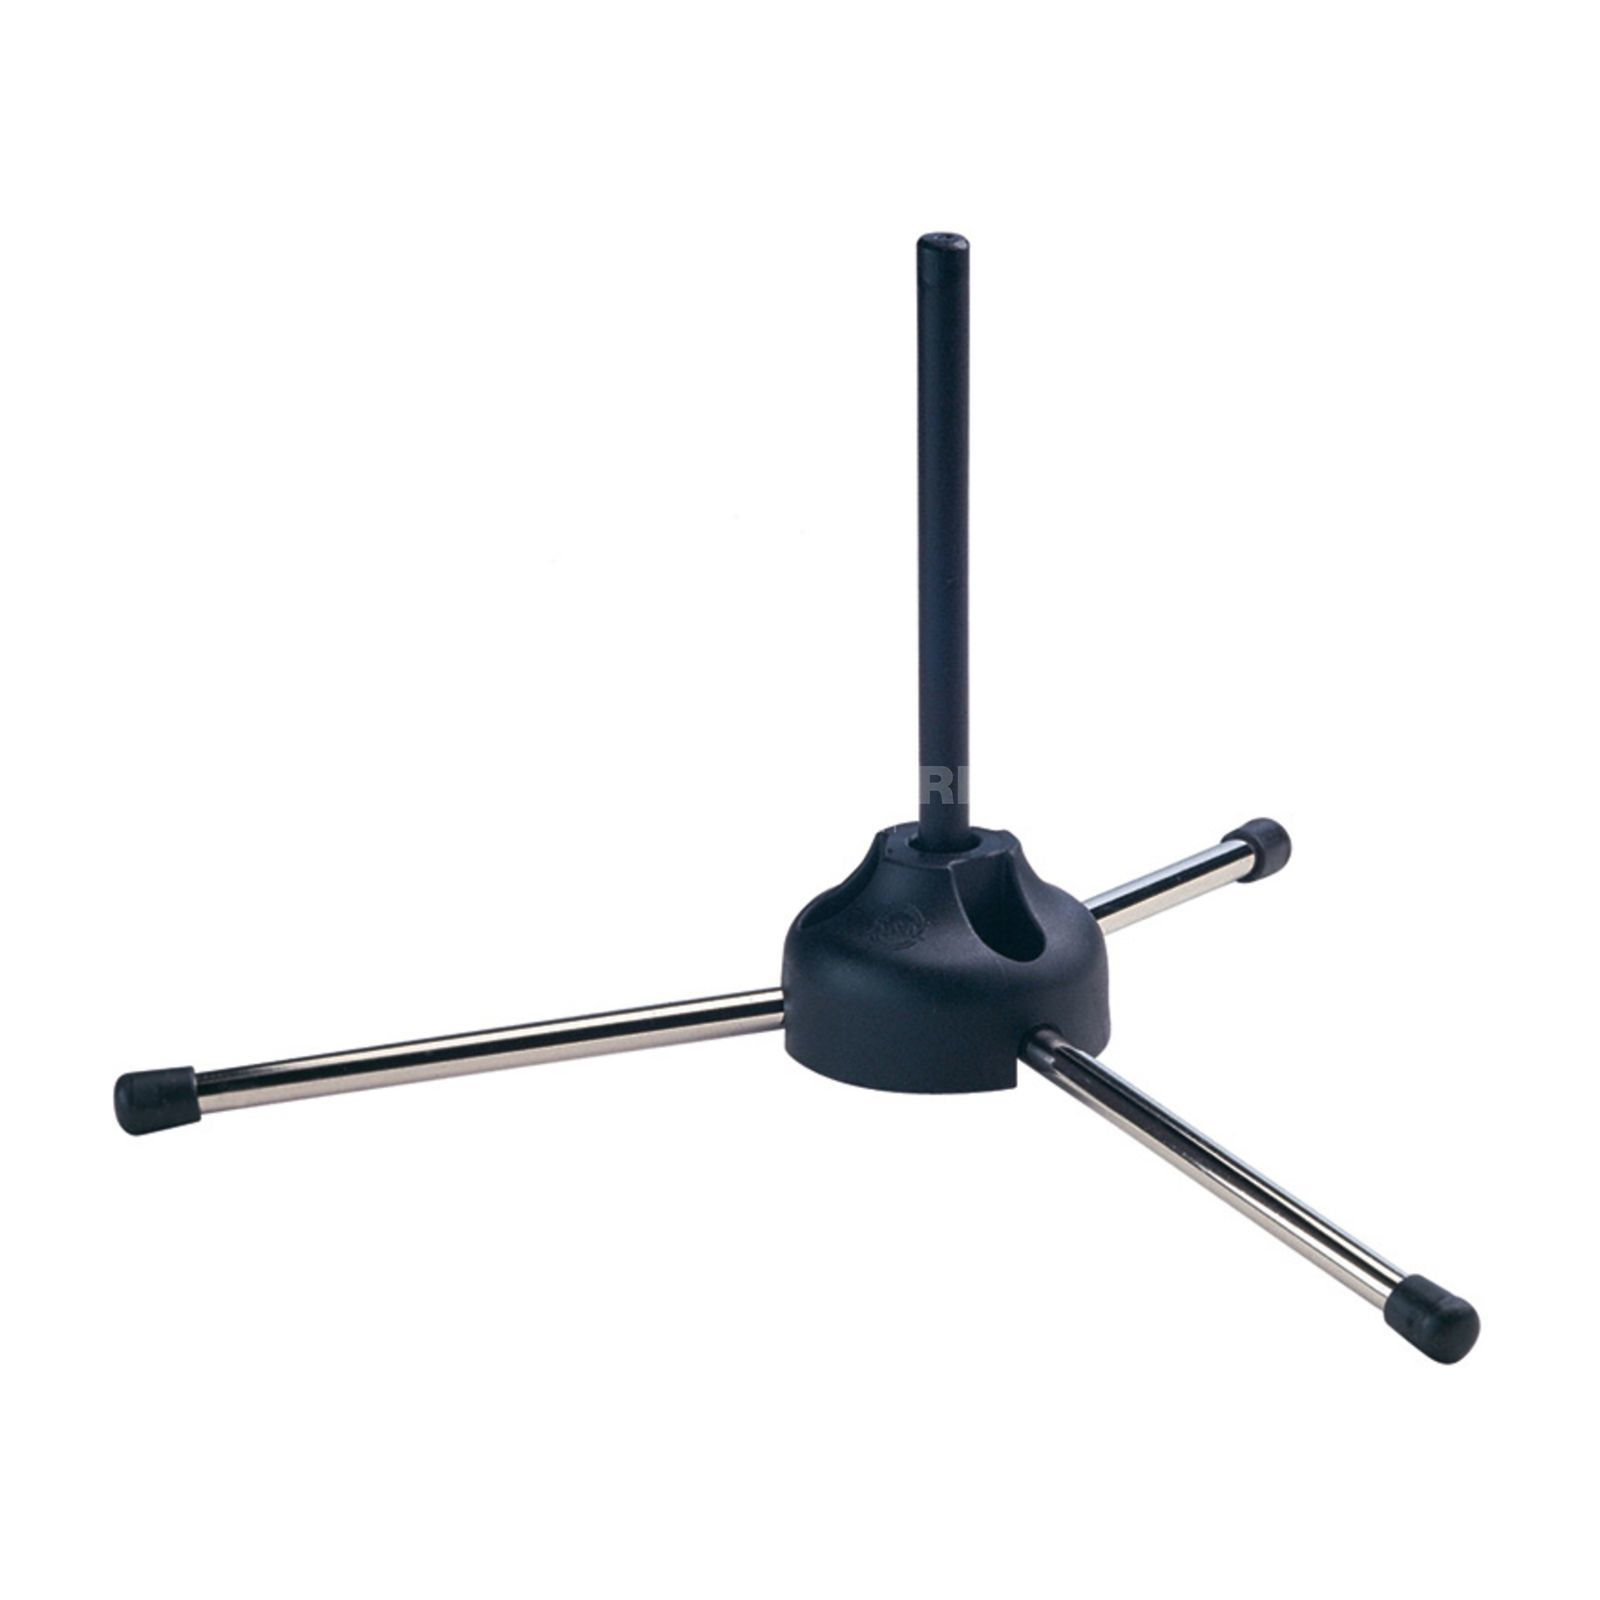 König & Meyer 152/85 Flute Stand nickel Product Image